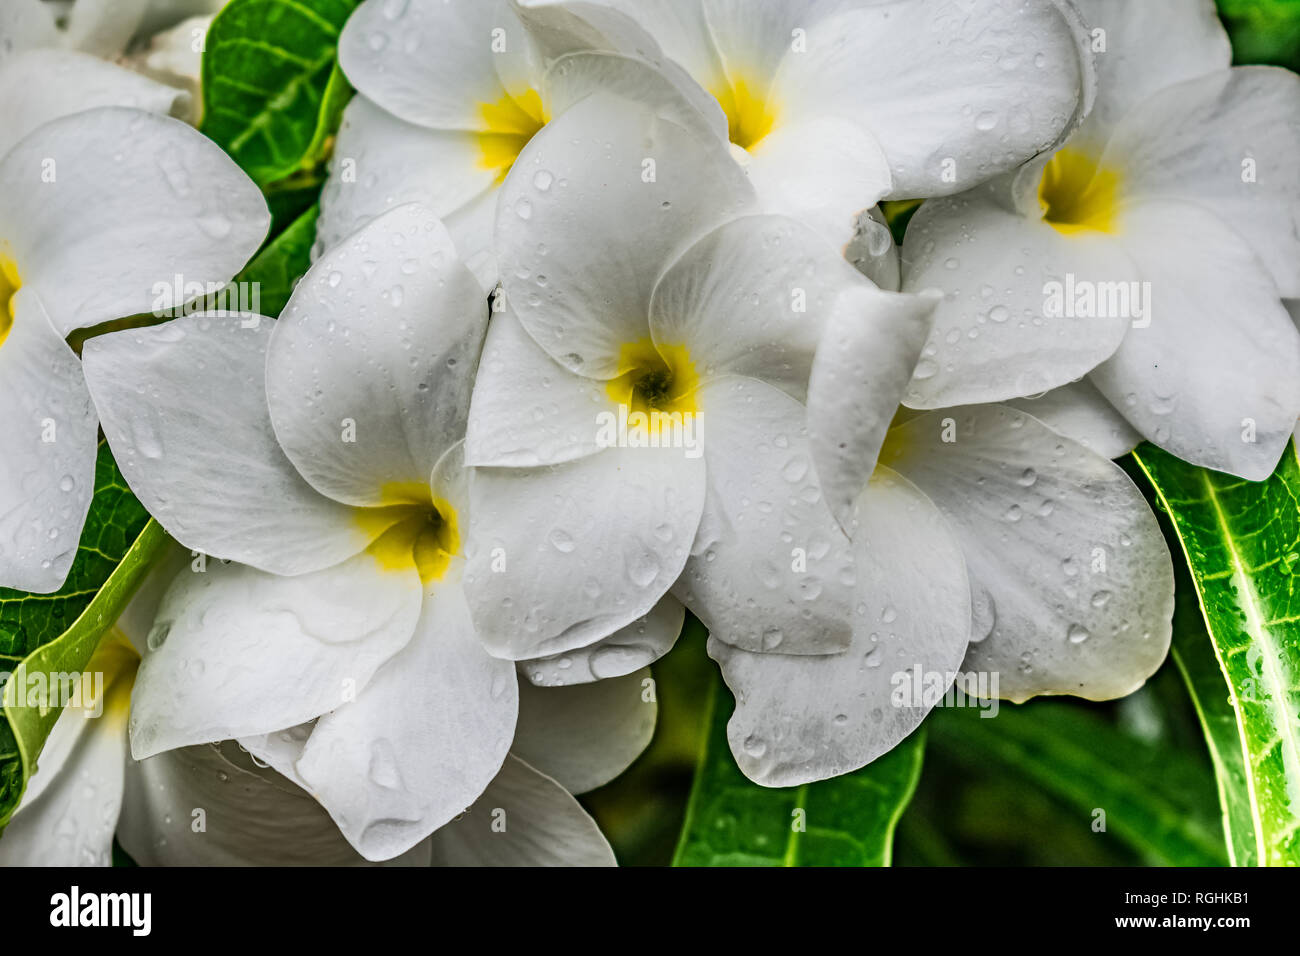 very close view of plumeria white flowery in the tree with water drops looking awesome after rain fell. Stock Photo